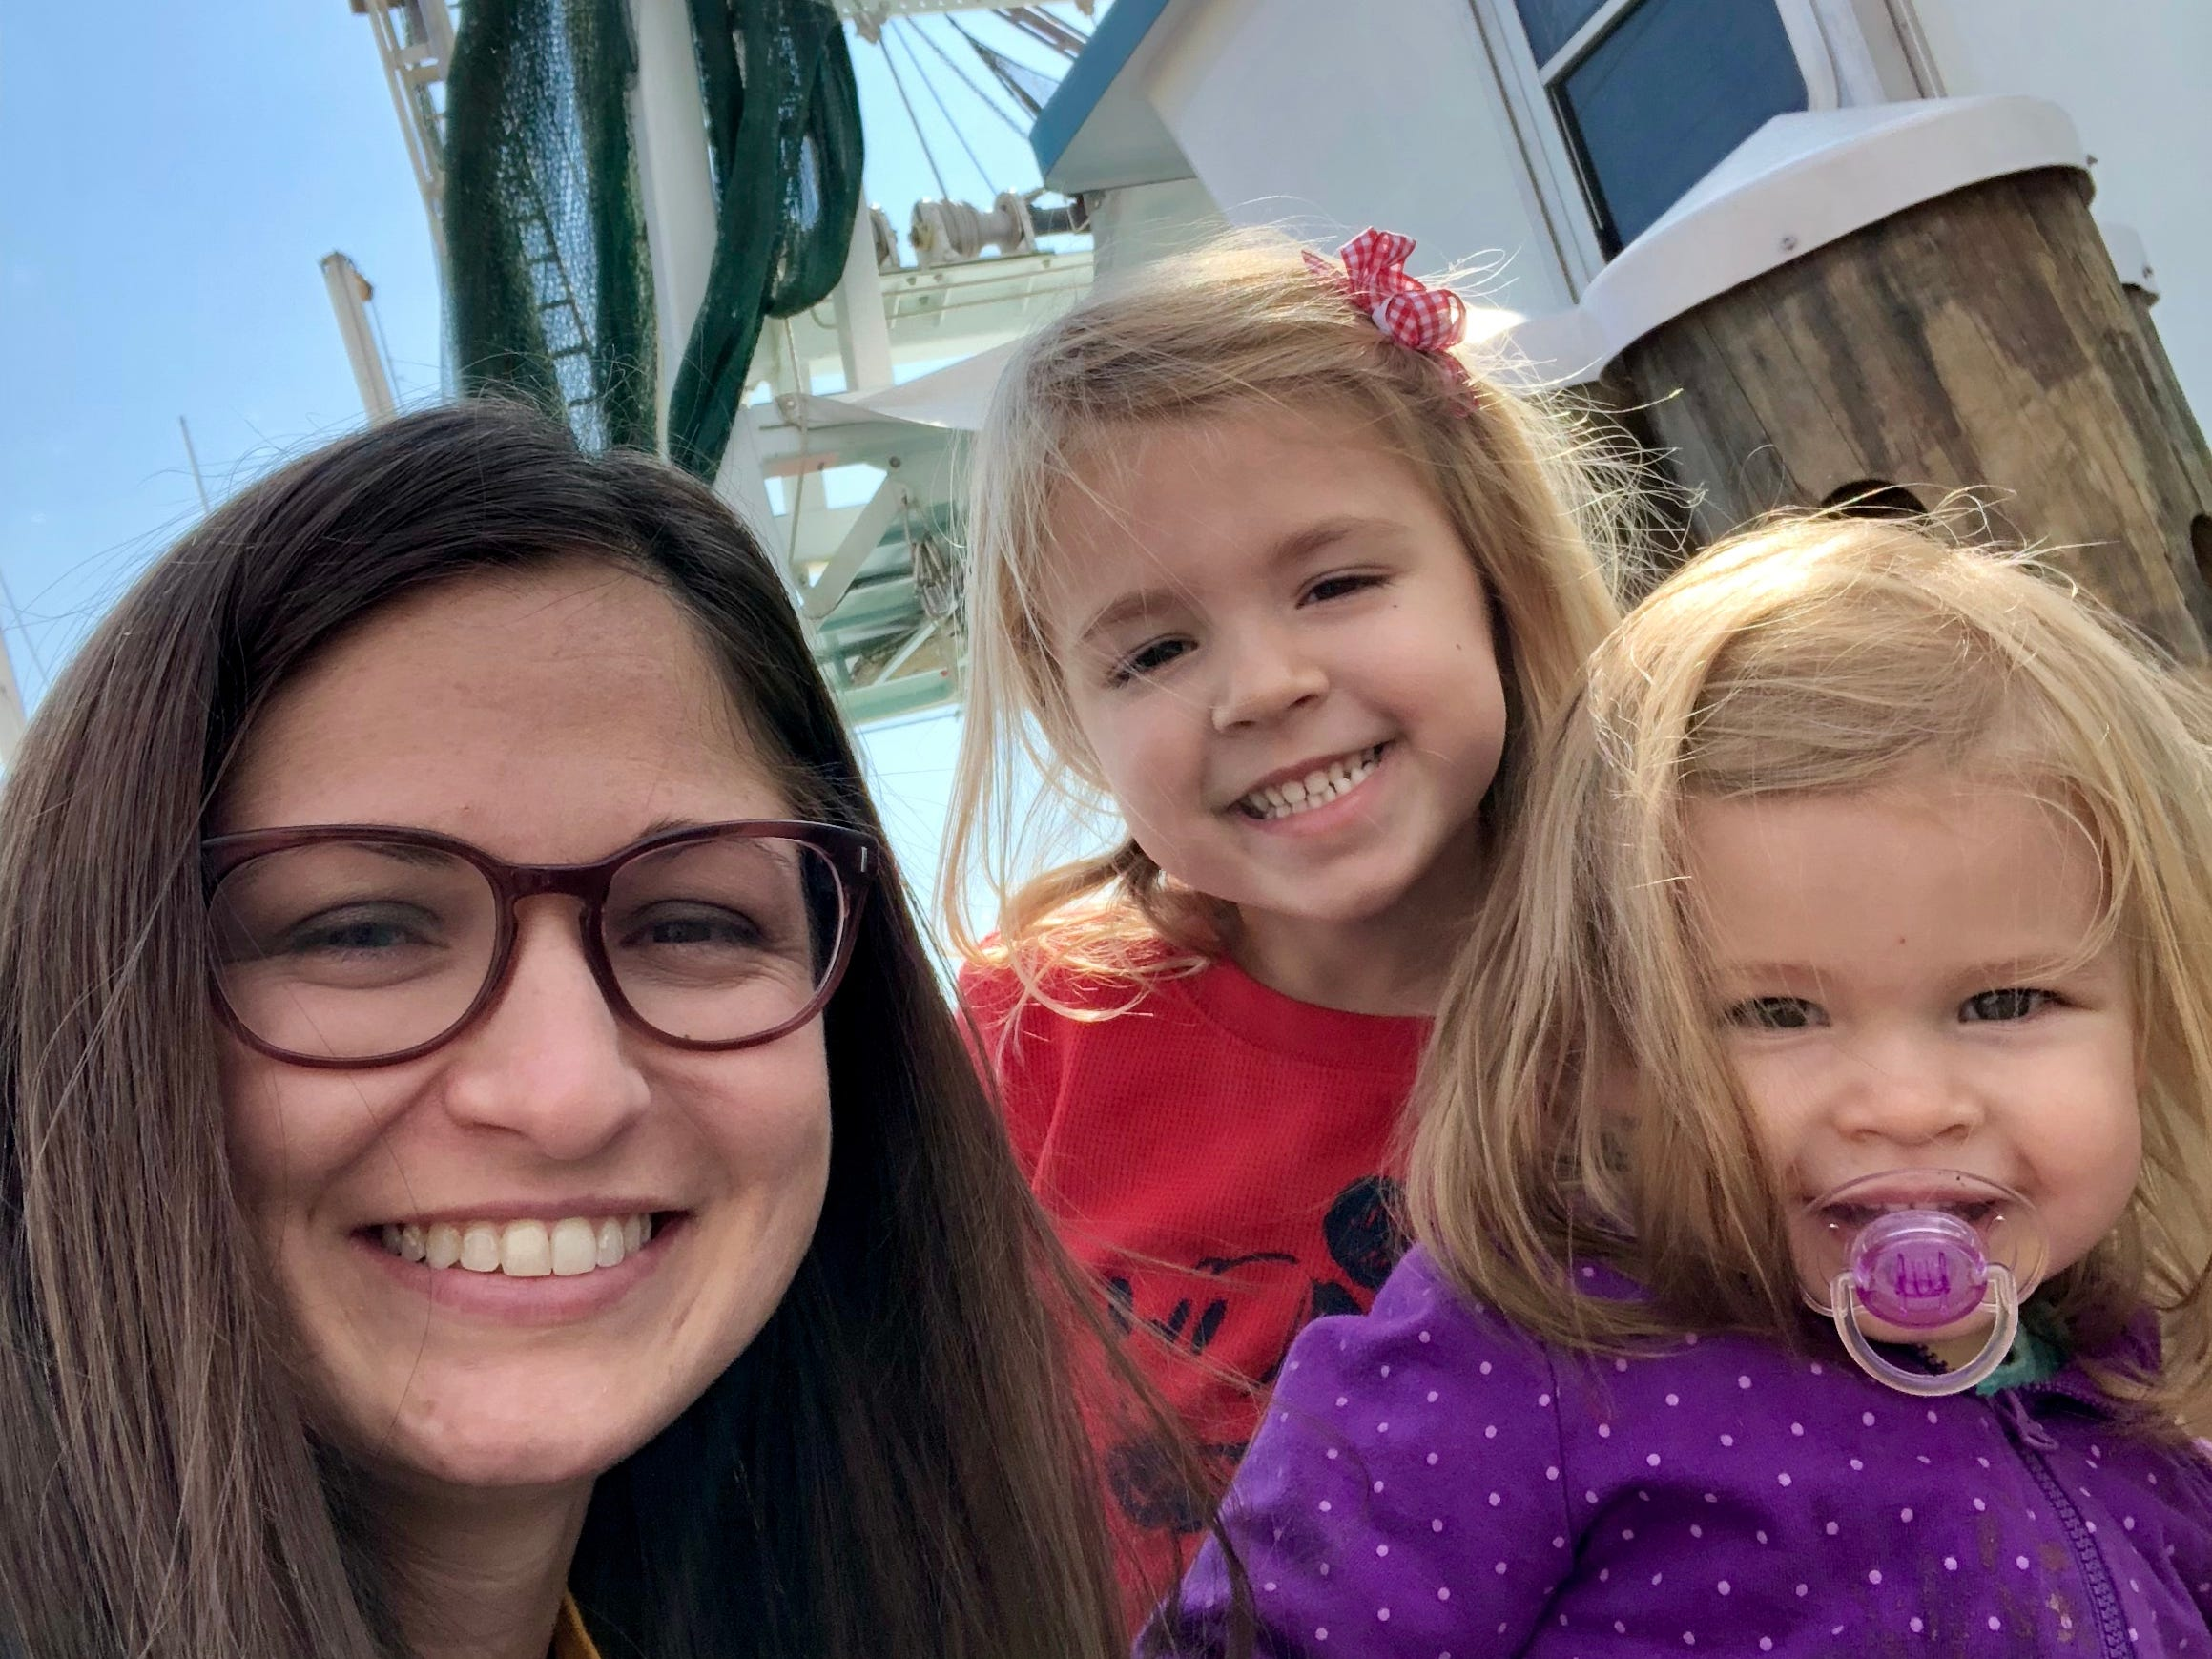 Reporter Leigh Guidry snaps a selfie with her daughters Avery and Marie in front of a shrimp boat on the Atchafalaya during their stop in Morgan City along the Bayou Teche Byway.